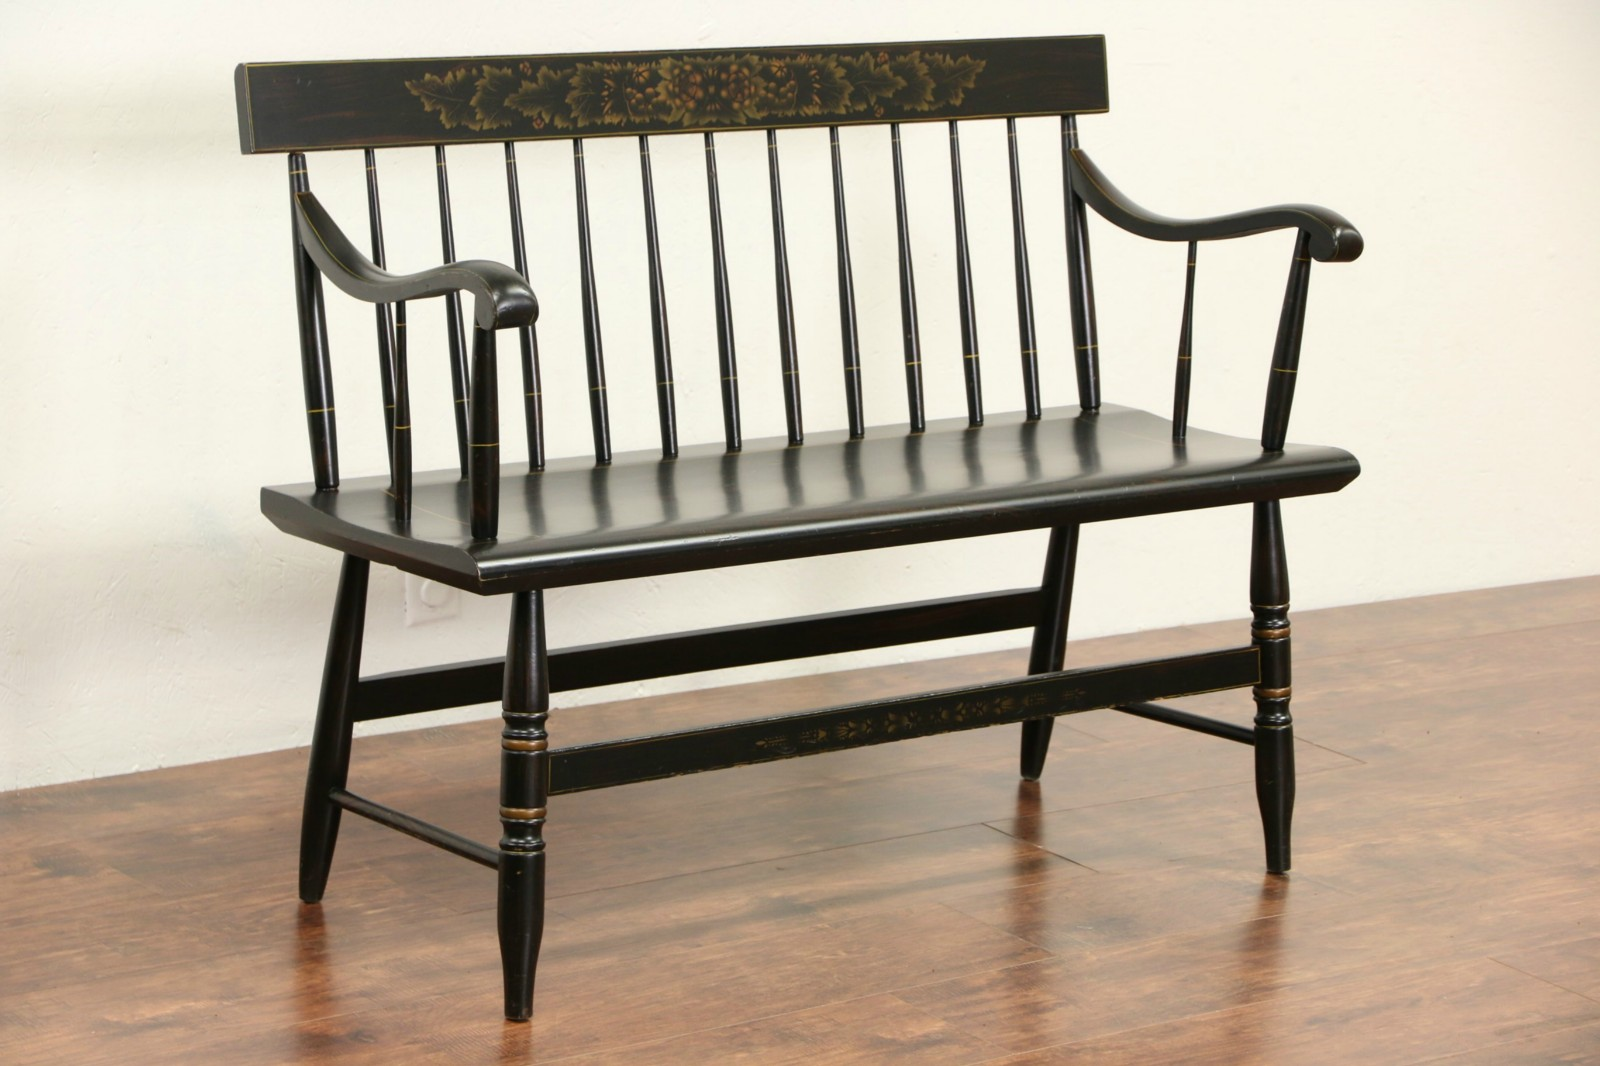 Wondrous Hitchcock Style 1950 Vintage Stenciled Black Hall Bench Machost Co Dining Chair Design Ideas Machostcouk